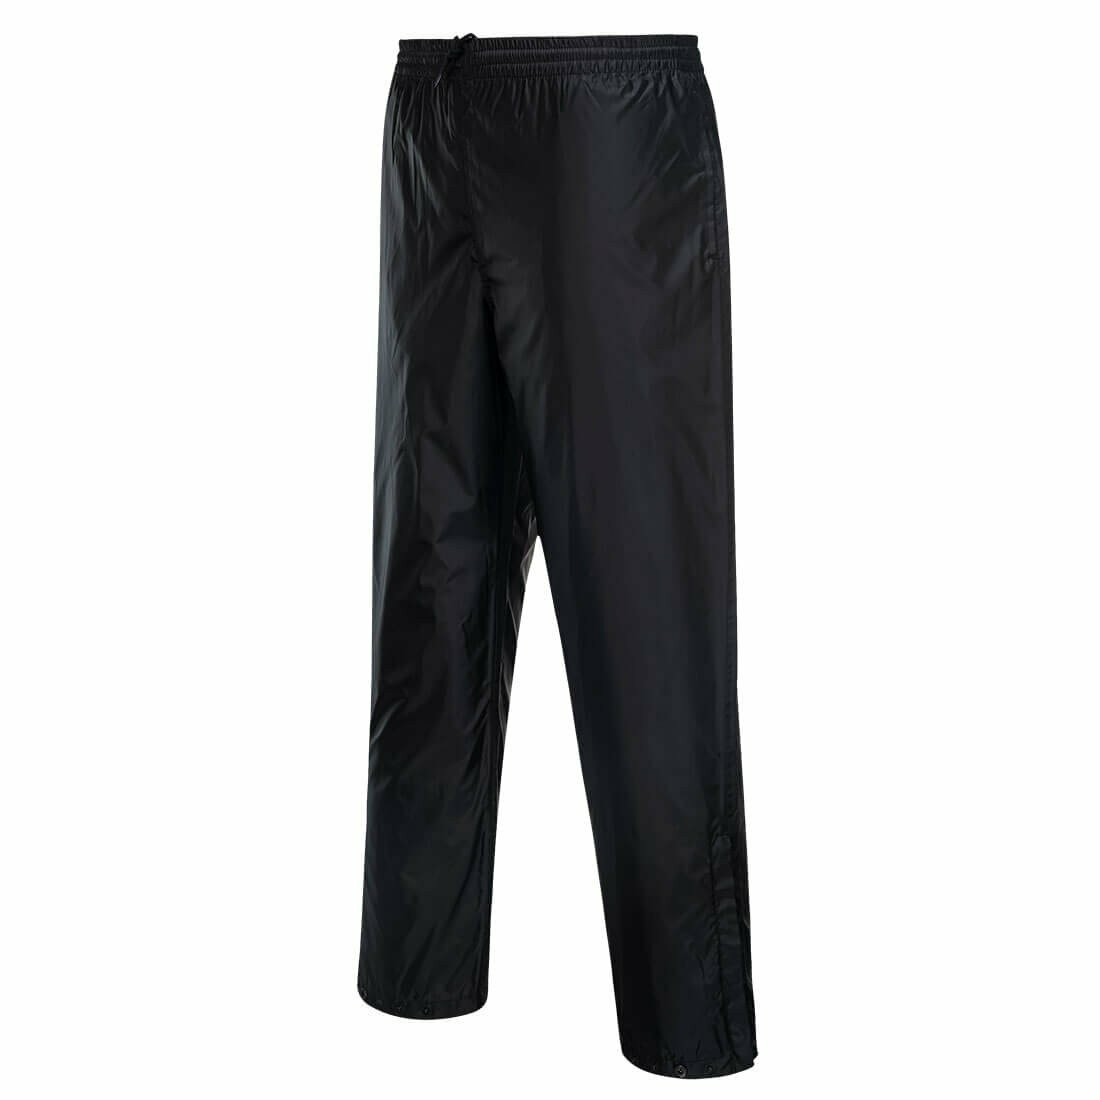 K8031 Monsoon Pants